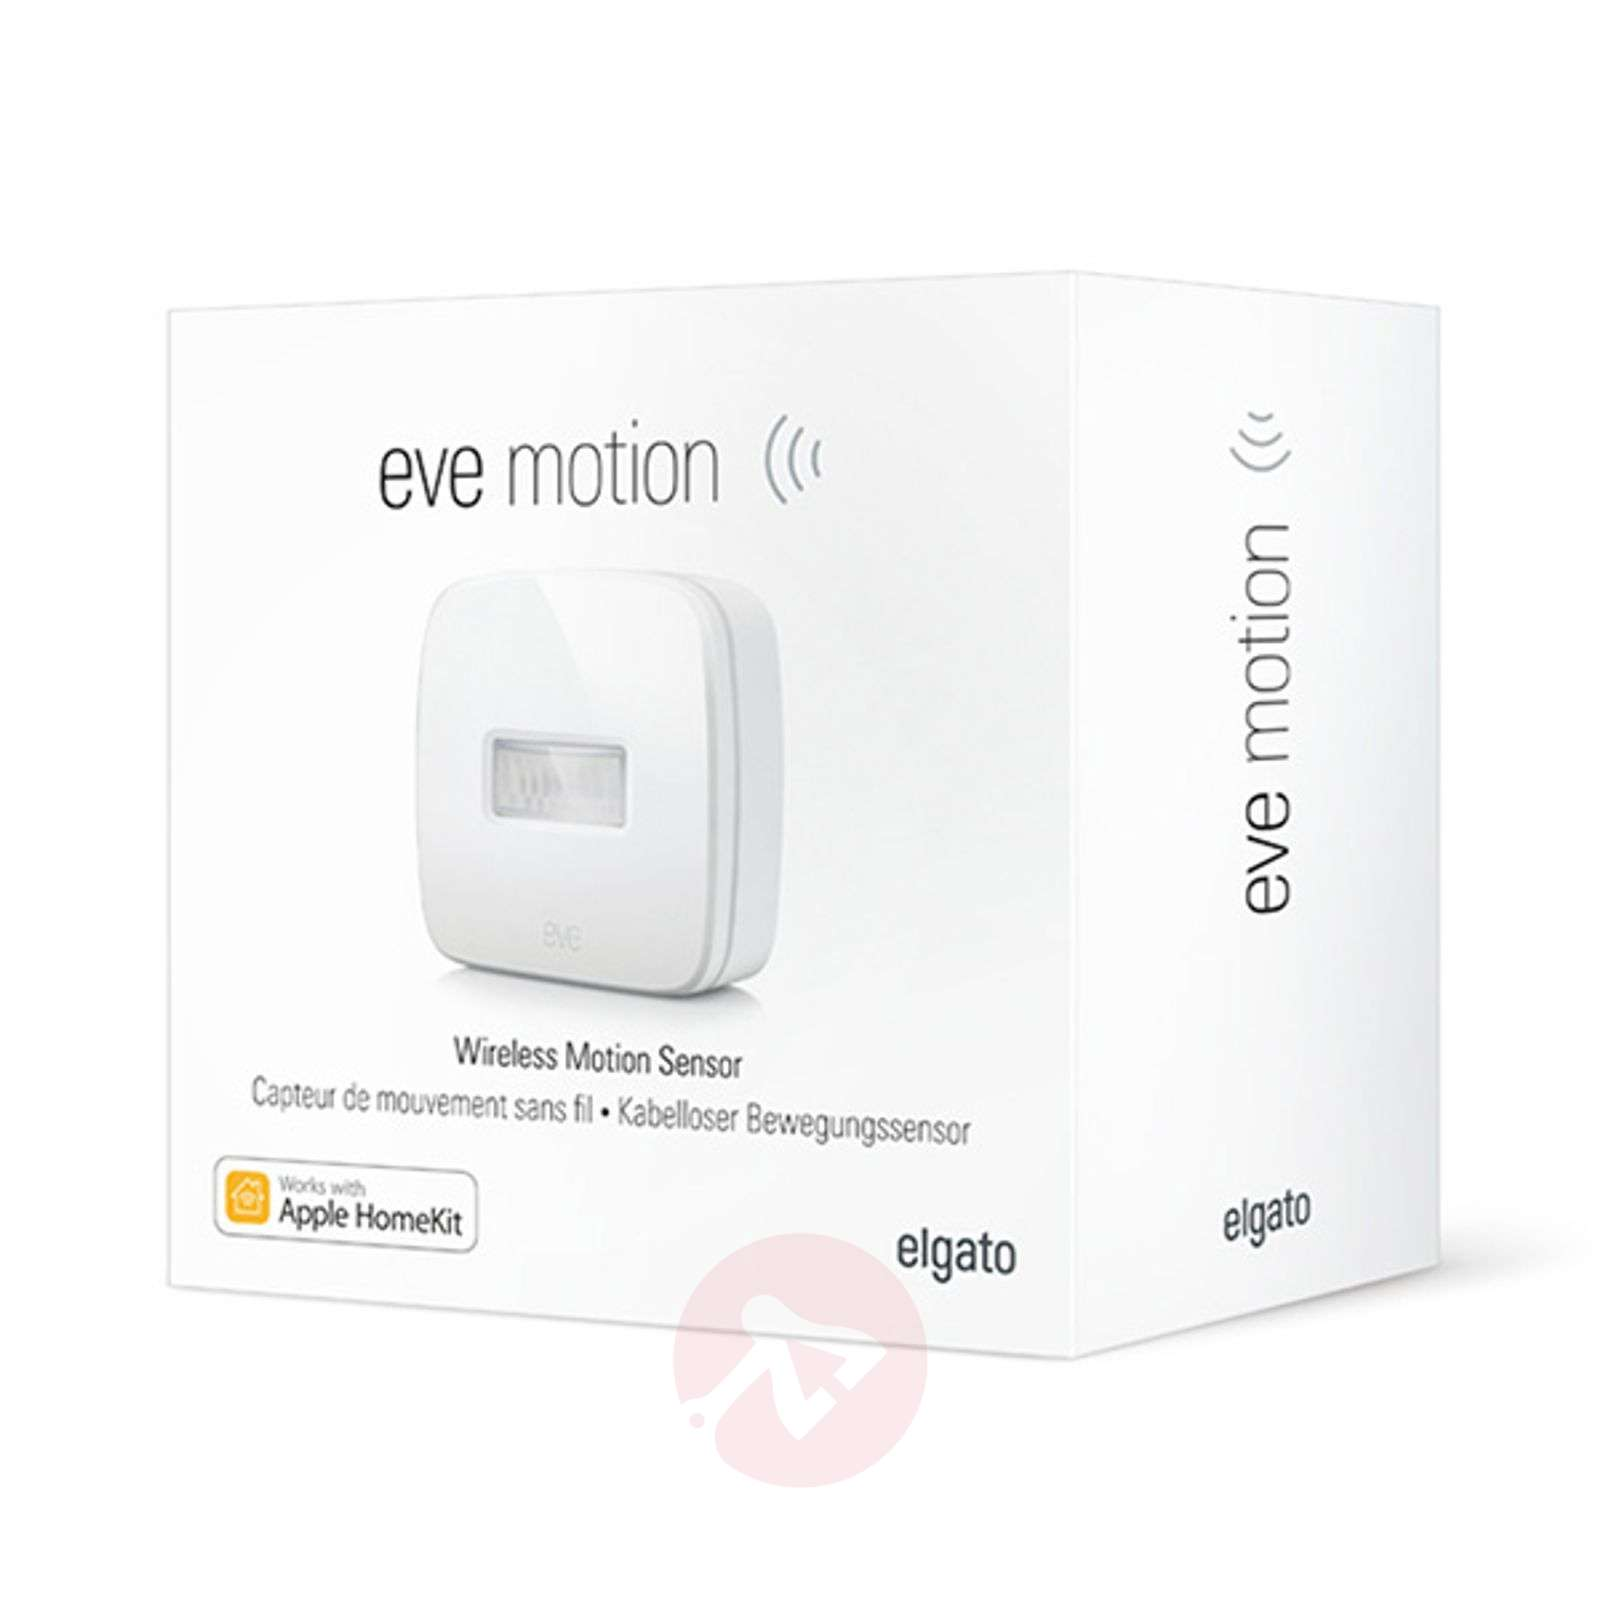 Eve Motion Smart Home détecteur de mouvement-2029005-01